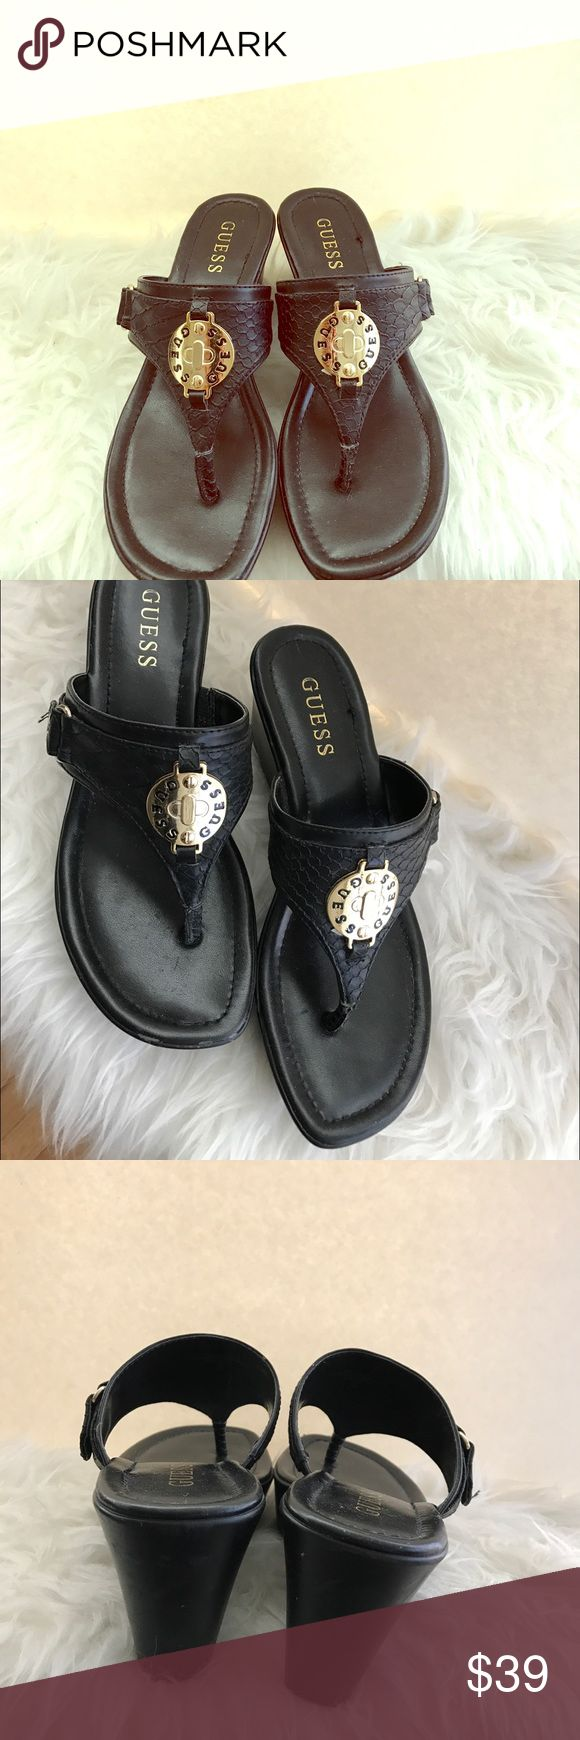 Guess Black Wedge High Heels Sandals Super cute sandals. Wear to bottoms because I wore it once at a pool party. Some scuffing in the front but can't barely noticed (see picture) In excellent pre-worn condition. 2.5 inch heels. Please no trading. Size 7. Guess Shoes Sandals